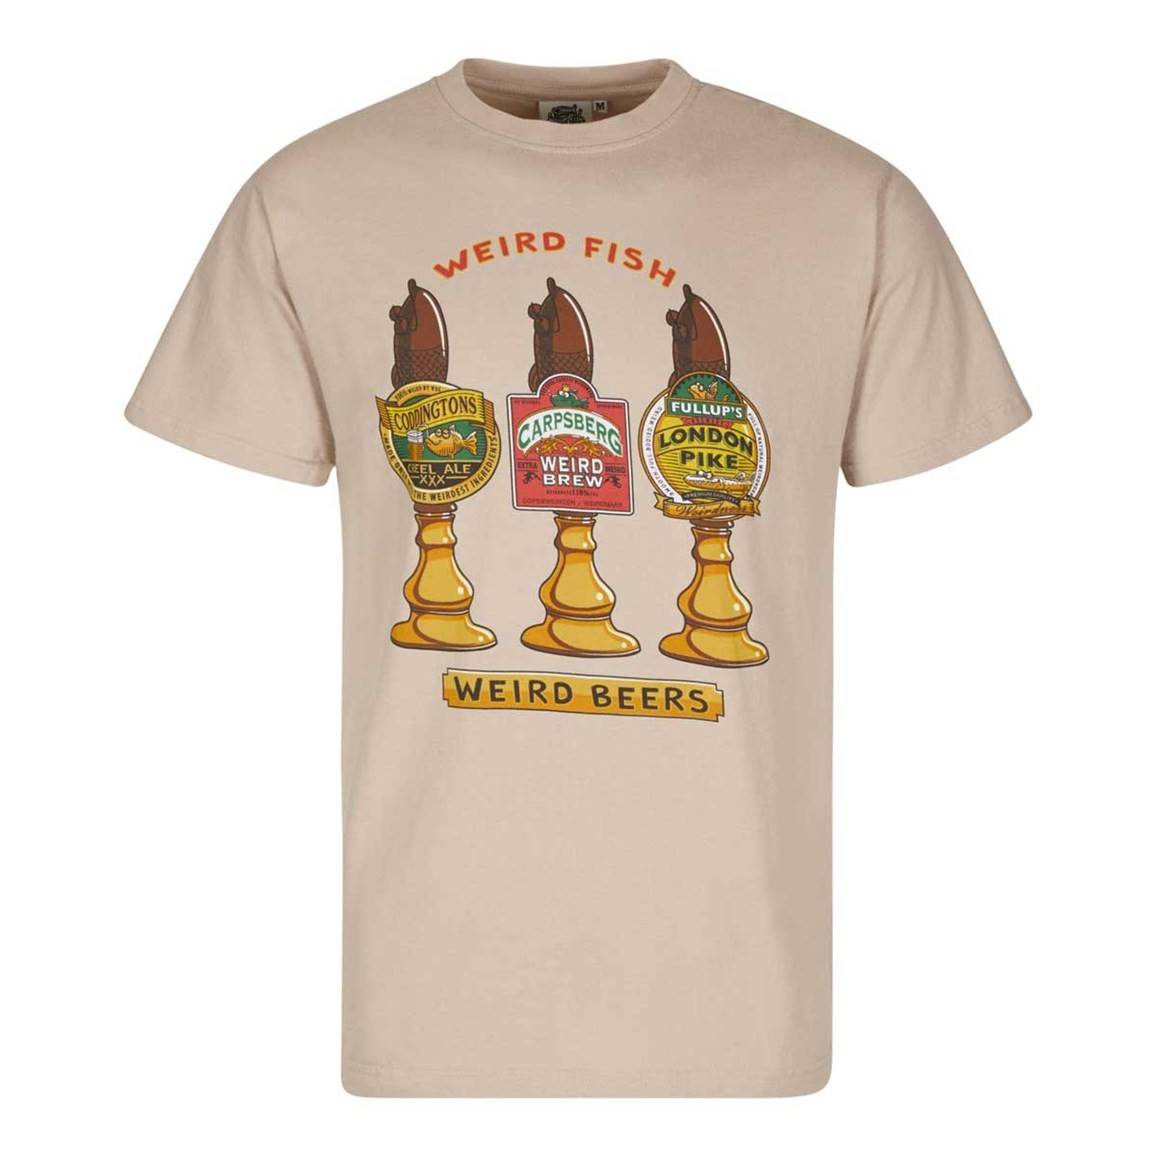 Weird Fish Weird Beers Printed Artist T-Shirt String